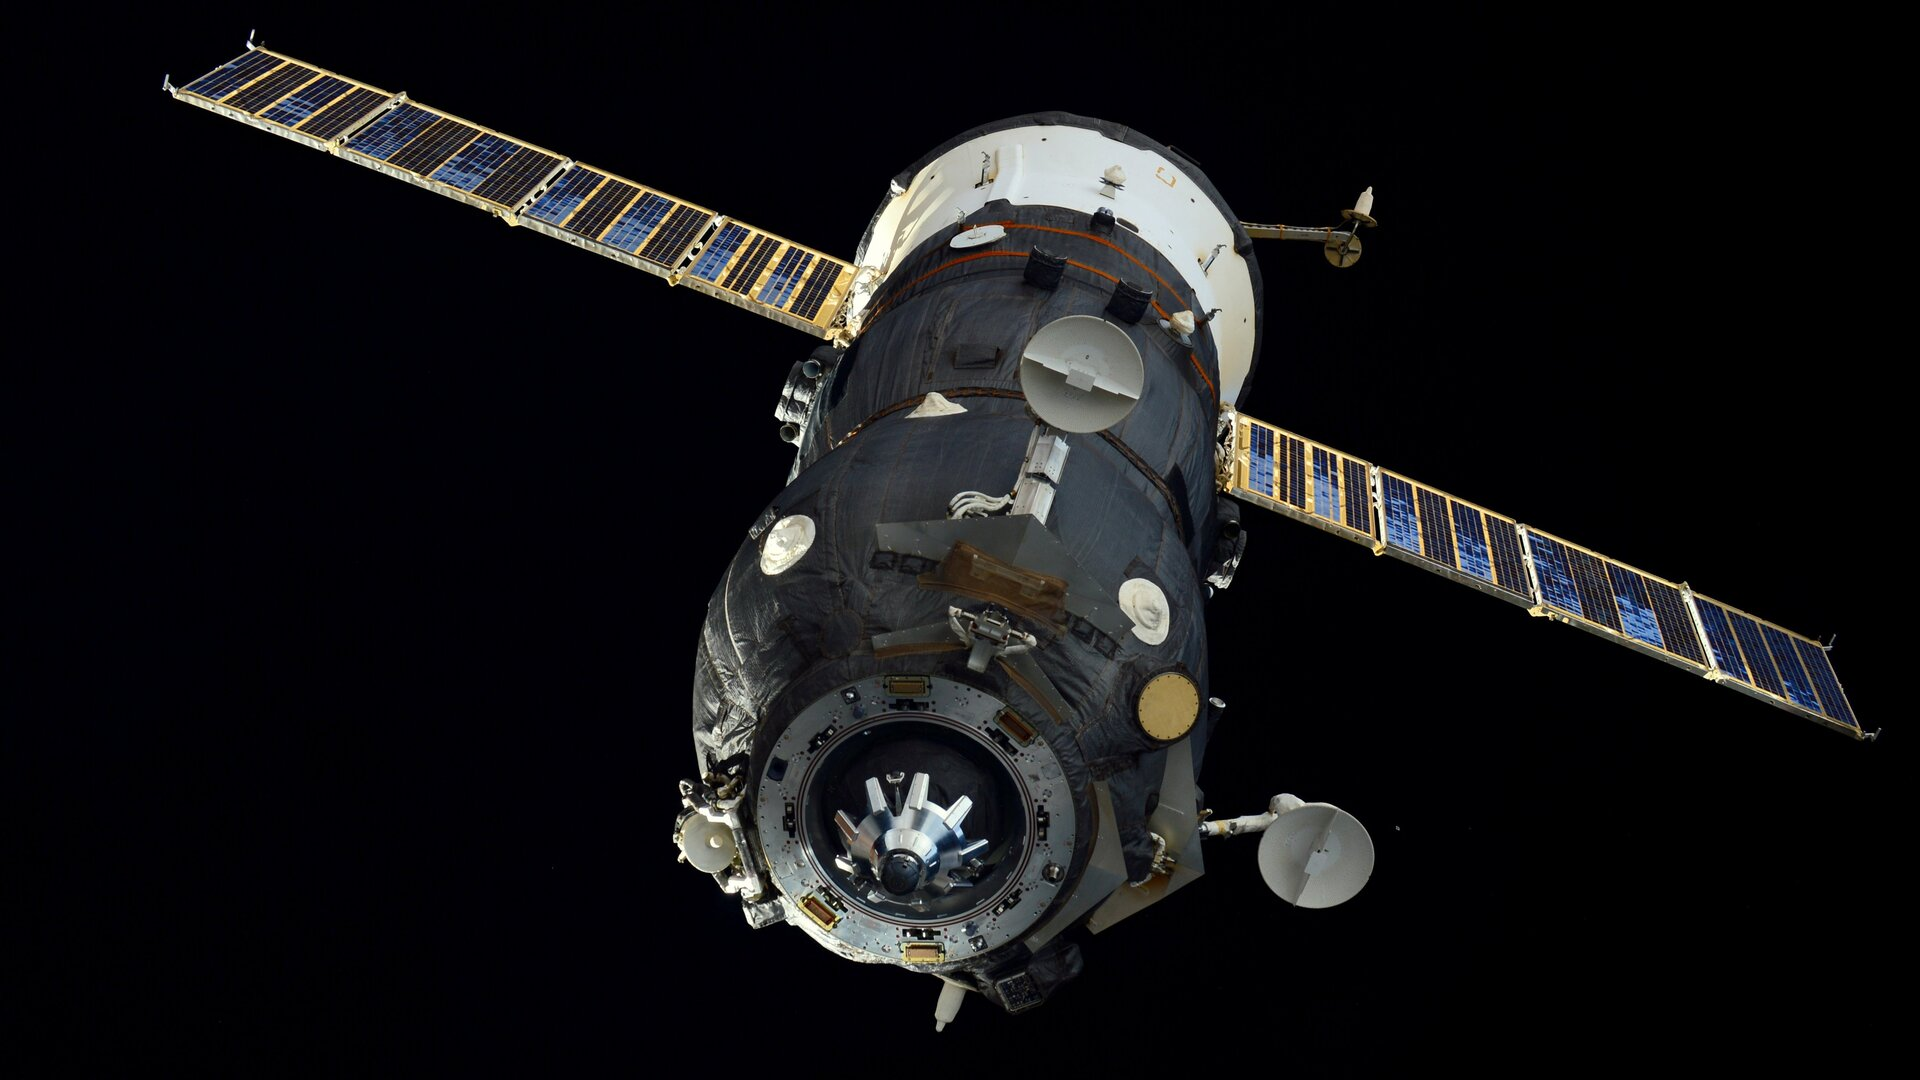 Progress supply spacecraft